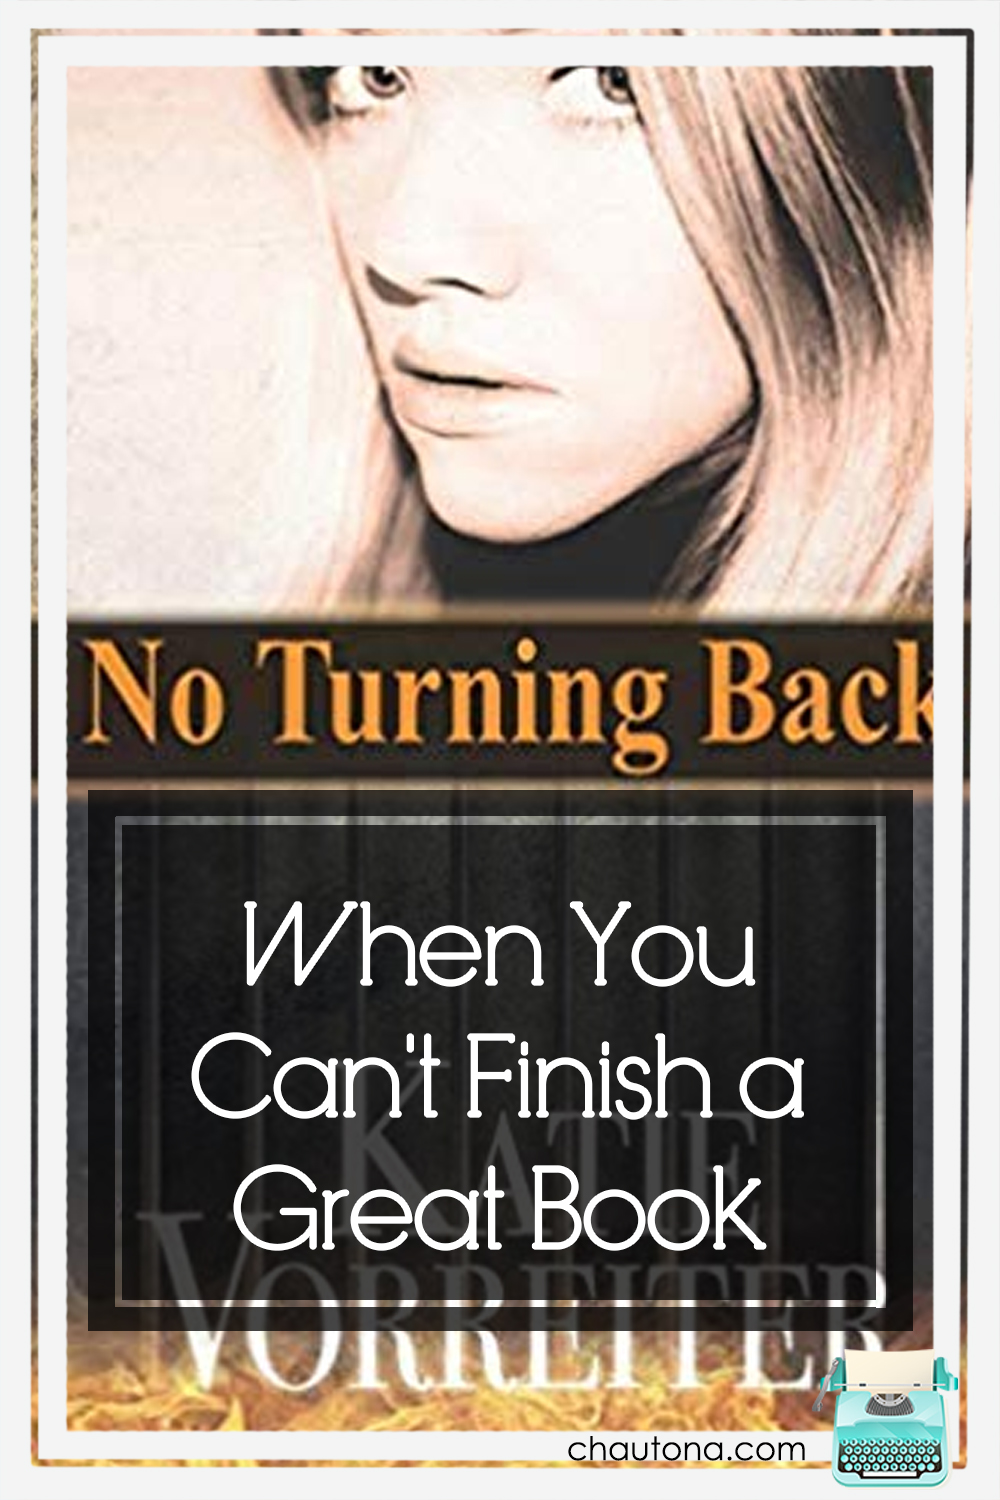 If you love thrillers, seriously... ignore my personal issues and try this book. Then tell me how it ends. I'm dying to know. So disappointed... in me. via @chautonahavig